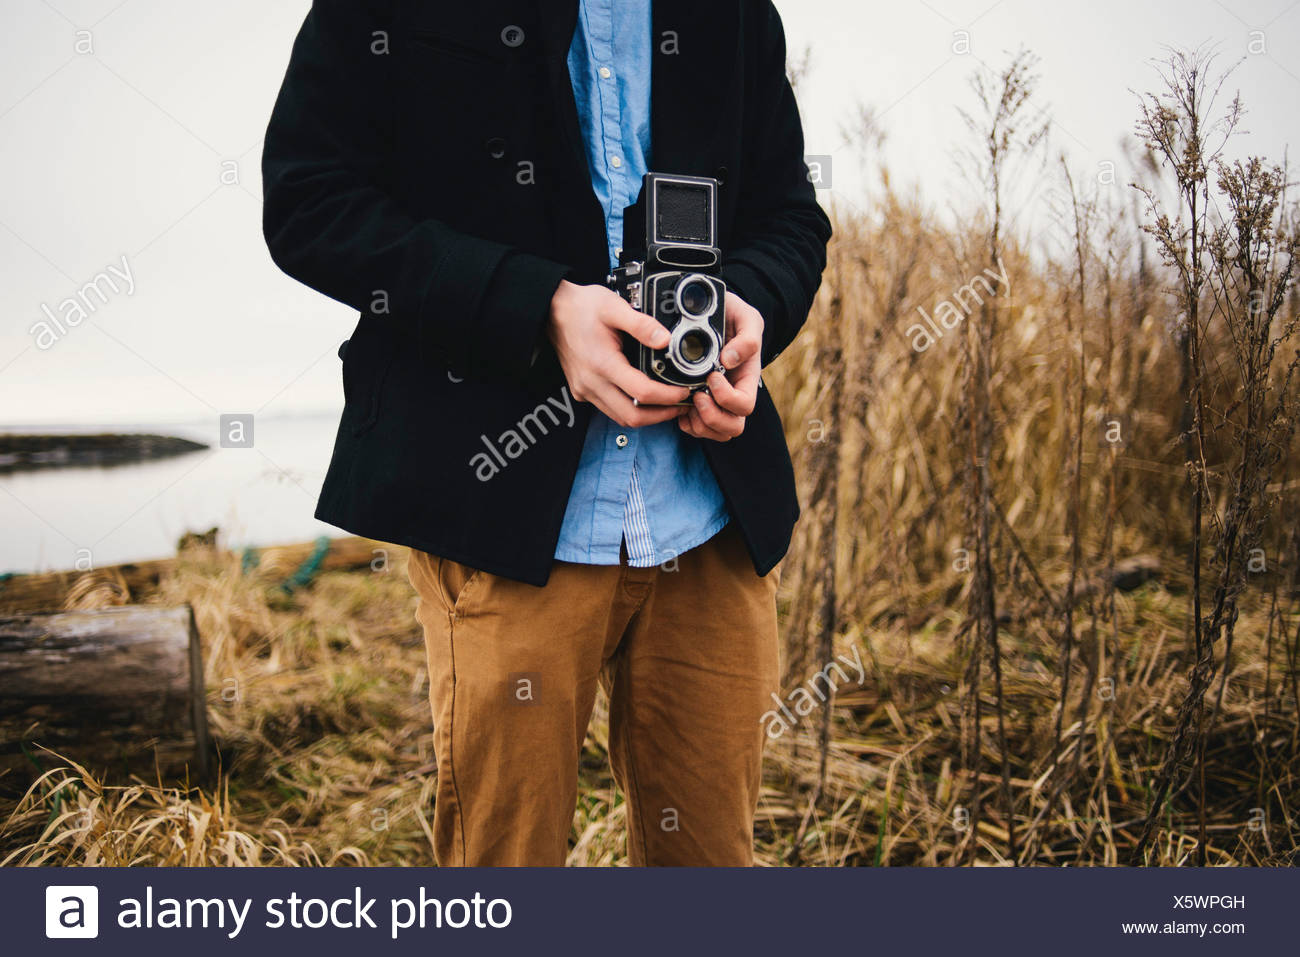 Midsection of man photographing through retro styled camera in park - Stock Image